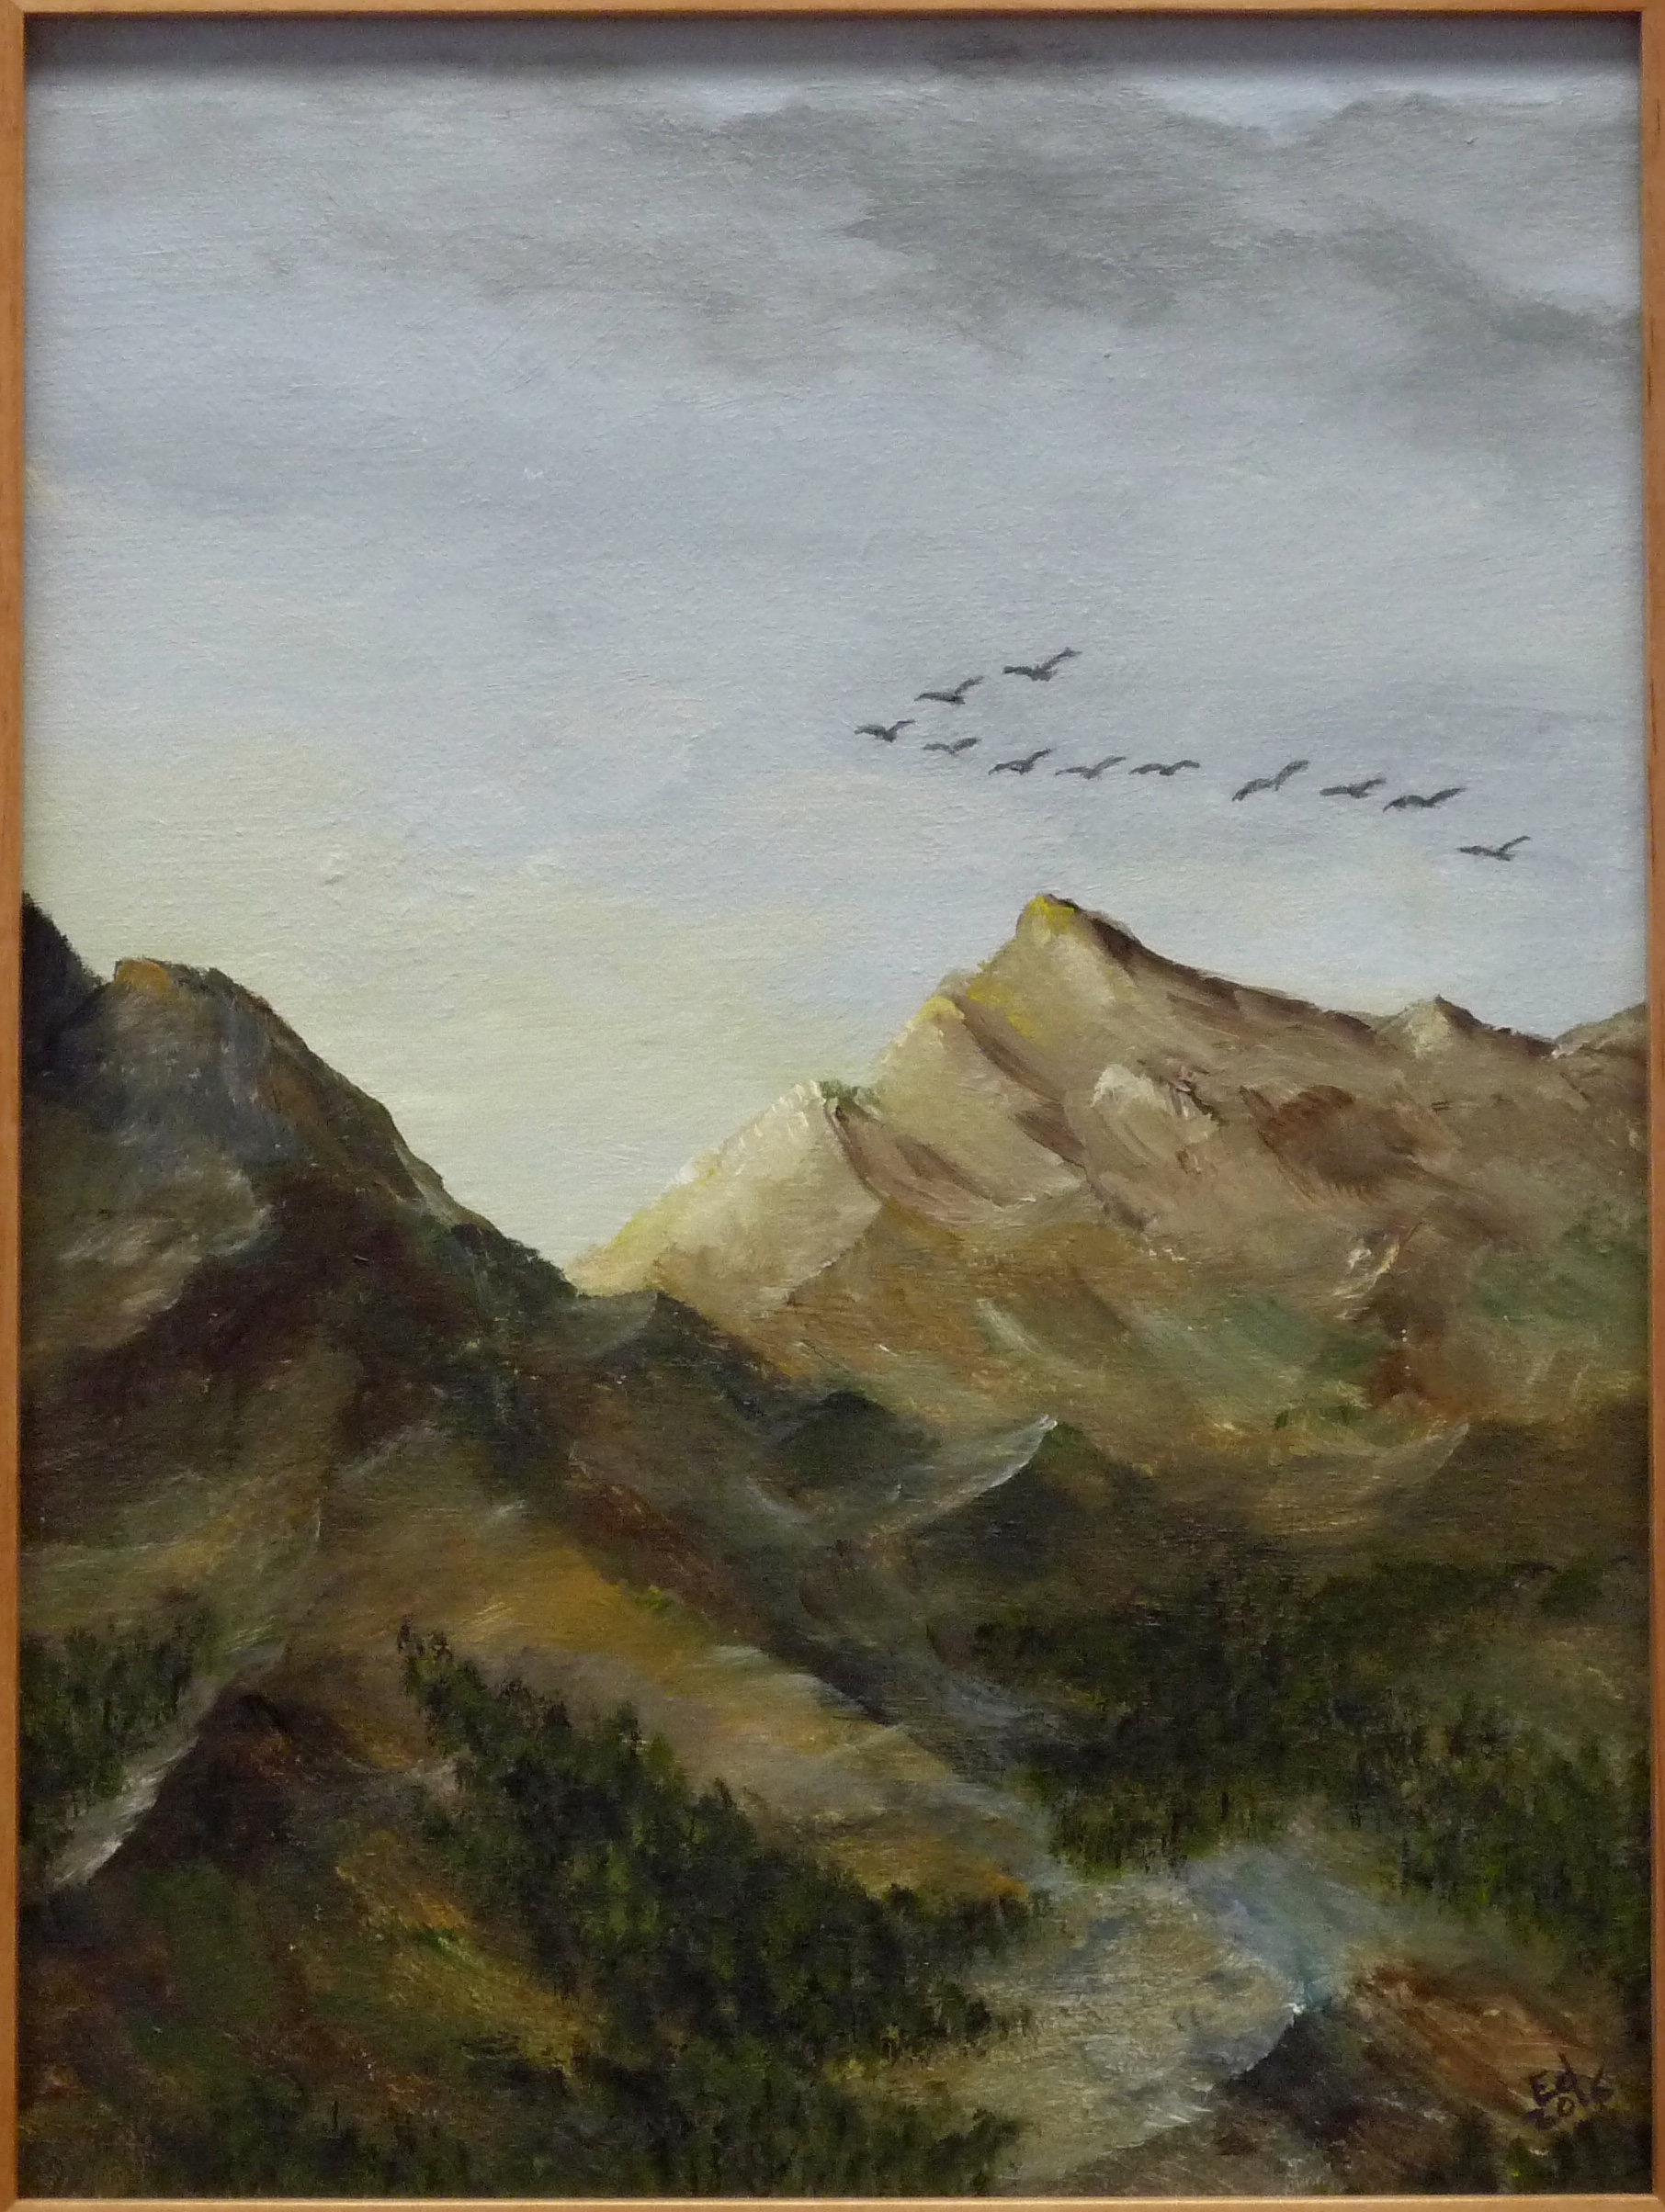 Migration over the Mountains